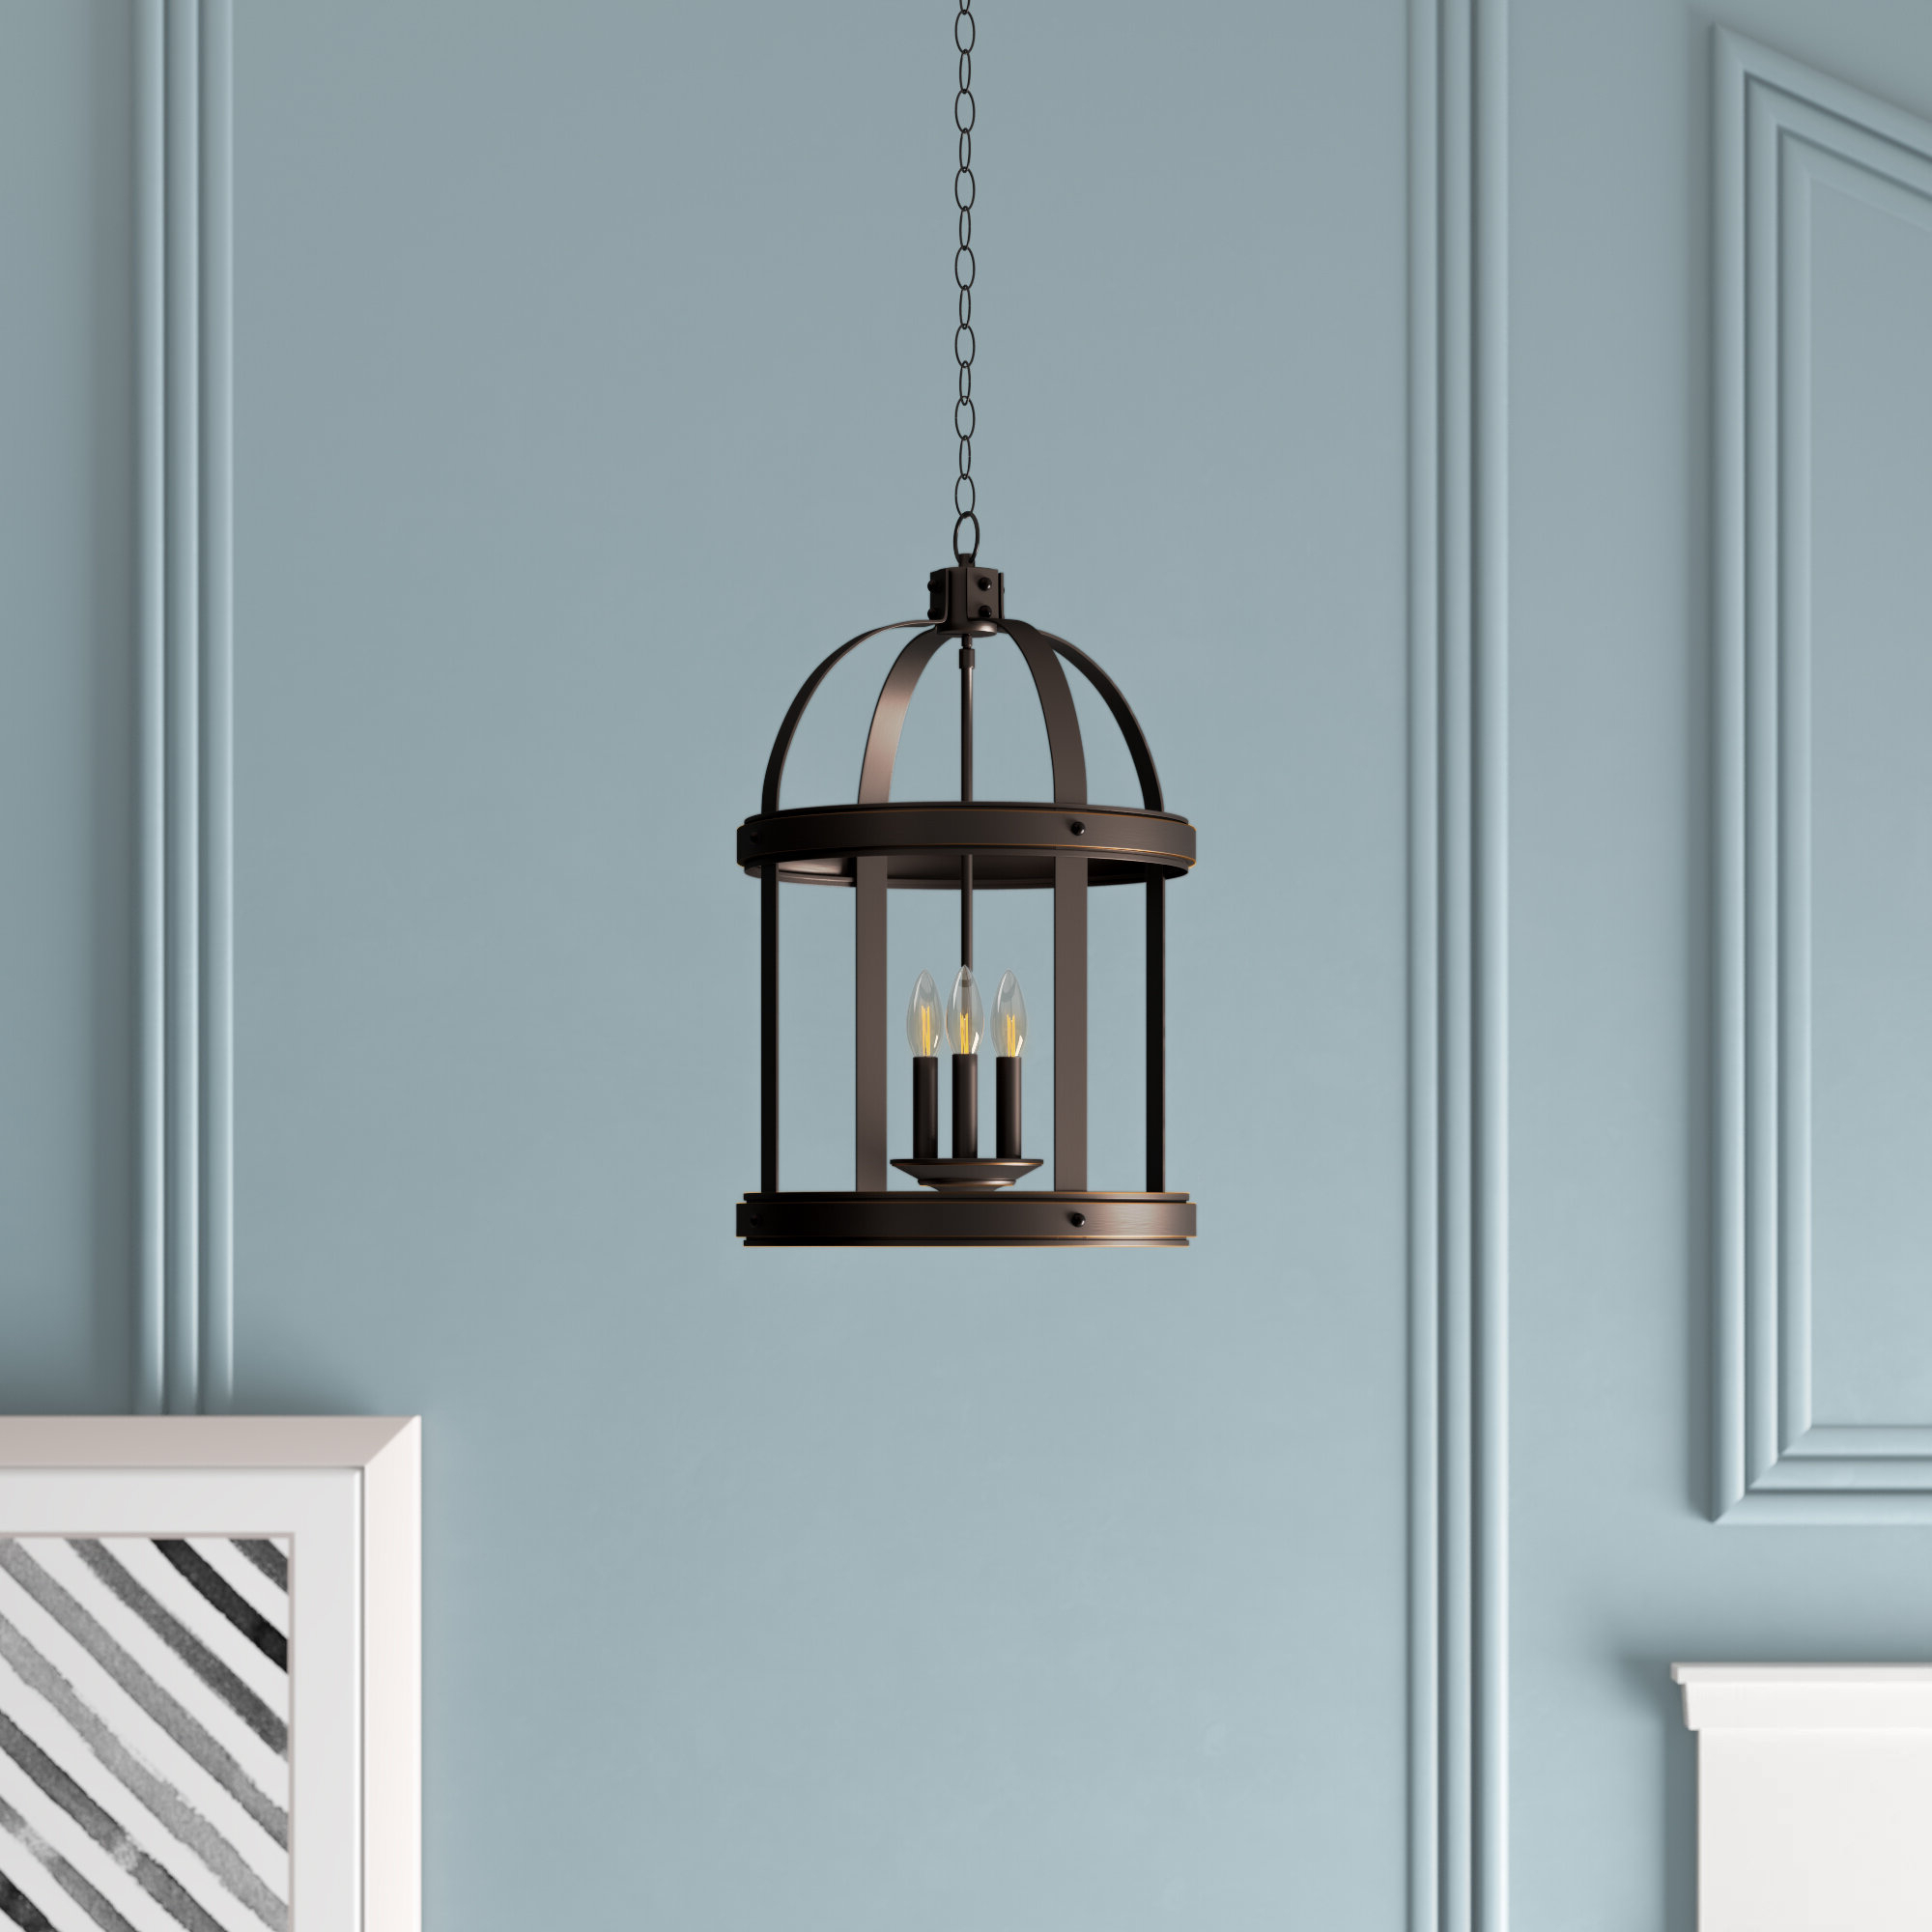 Fashionable Tessie 3 Light Lantern Cylinder Pendants Inside Pawling 3 Light Lantern Cylinder Pendant (View 8 of 20)